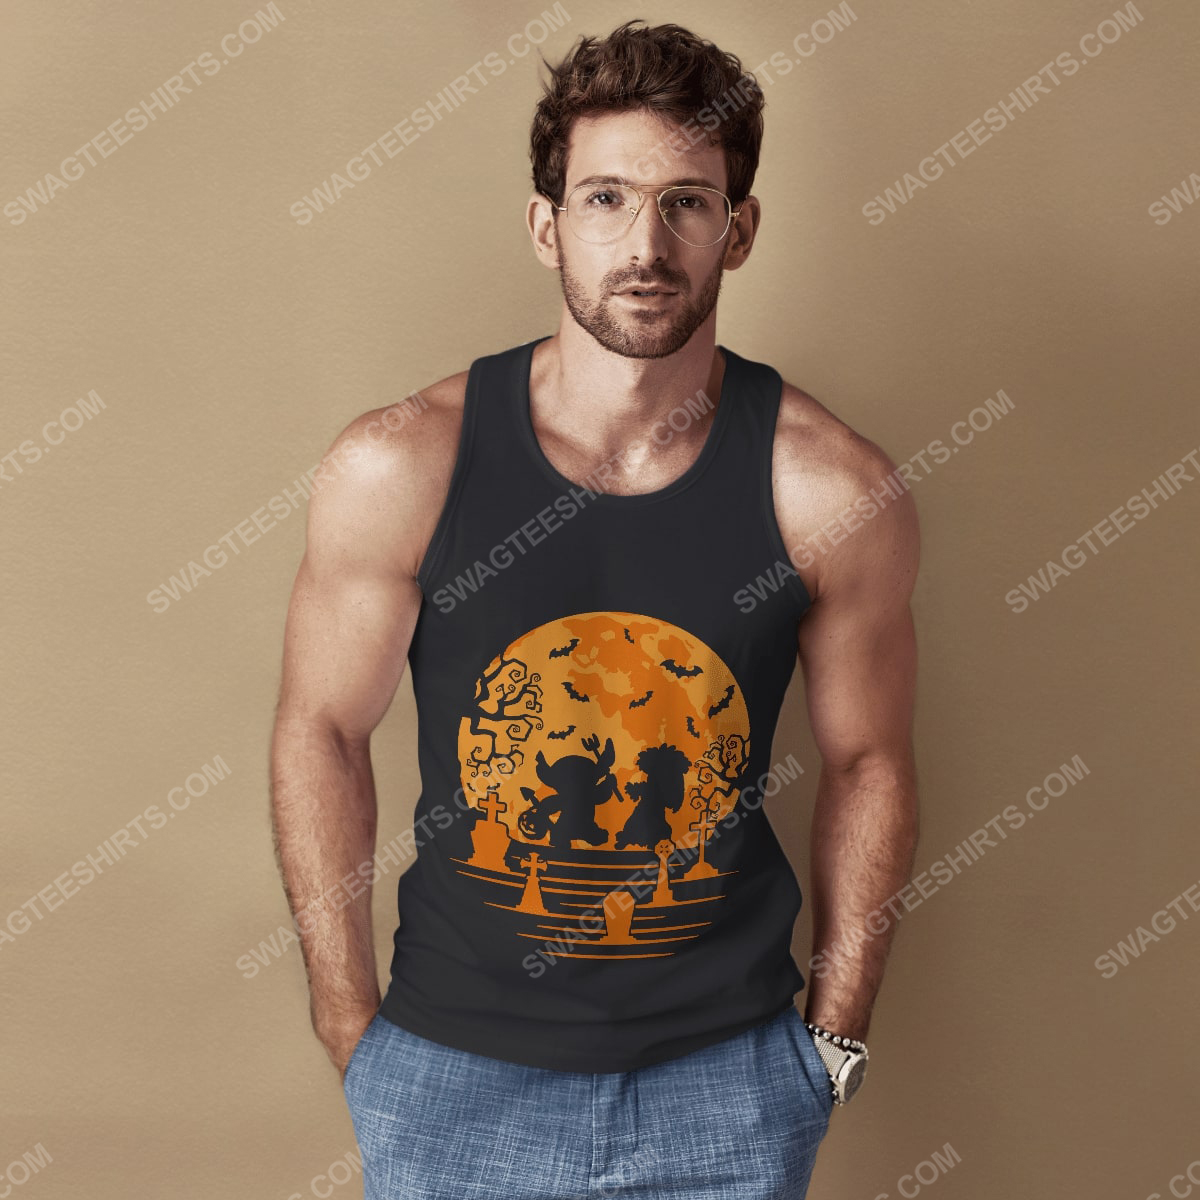 Lilo and stitch in halloween night tank top 1(1)